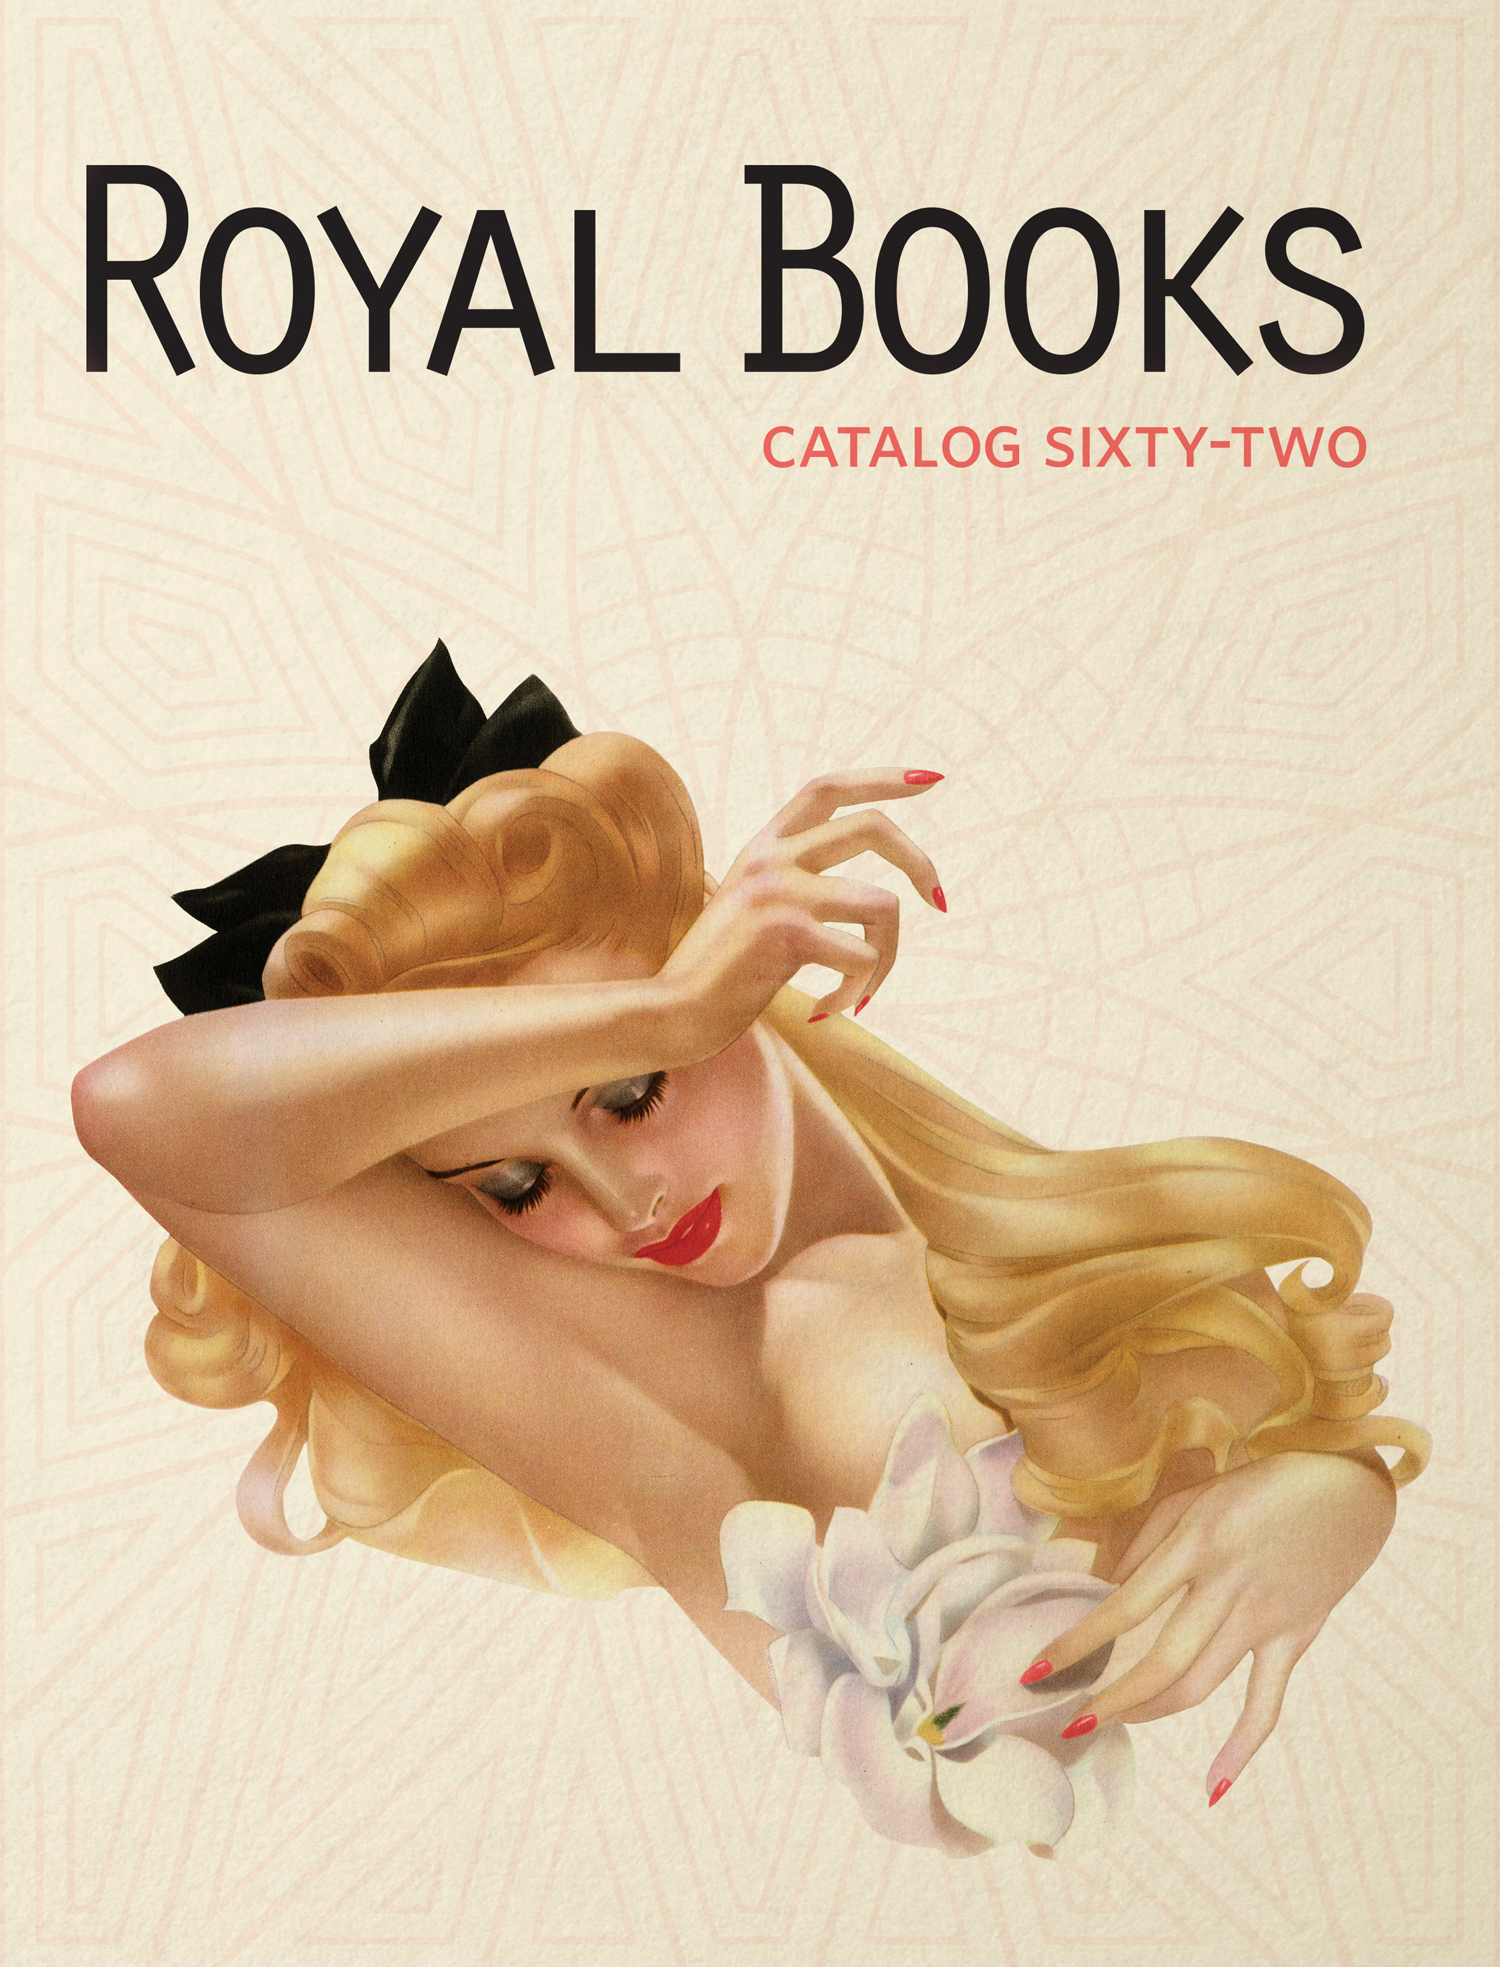 Royal Books | Catalogs